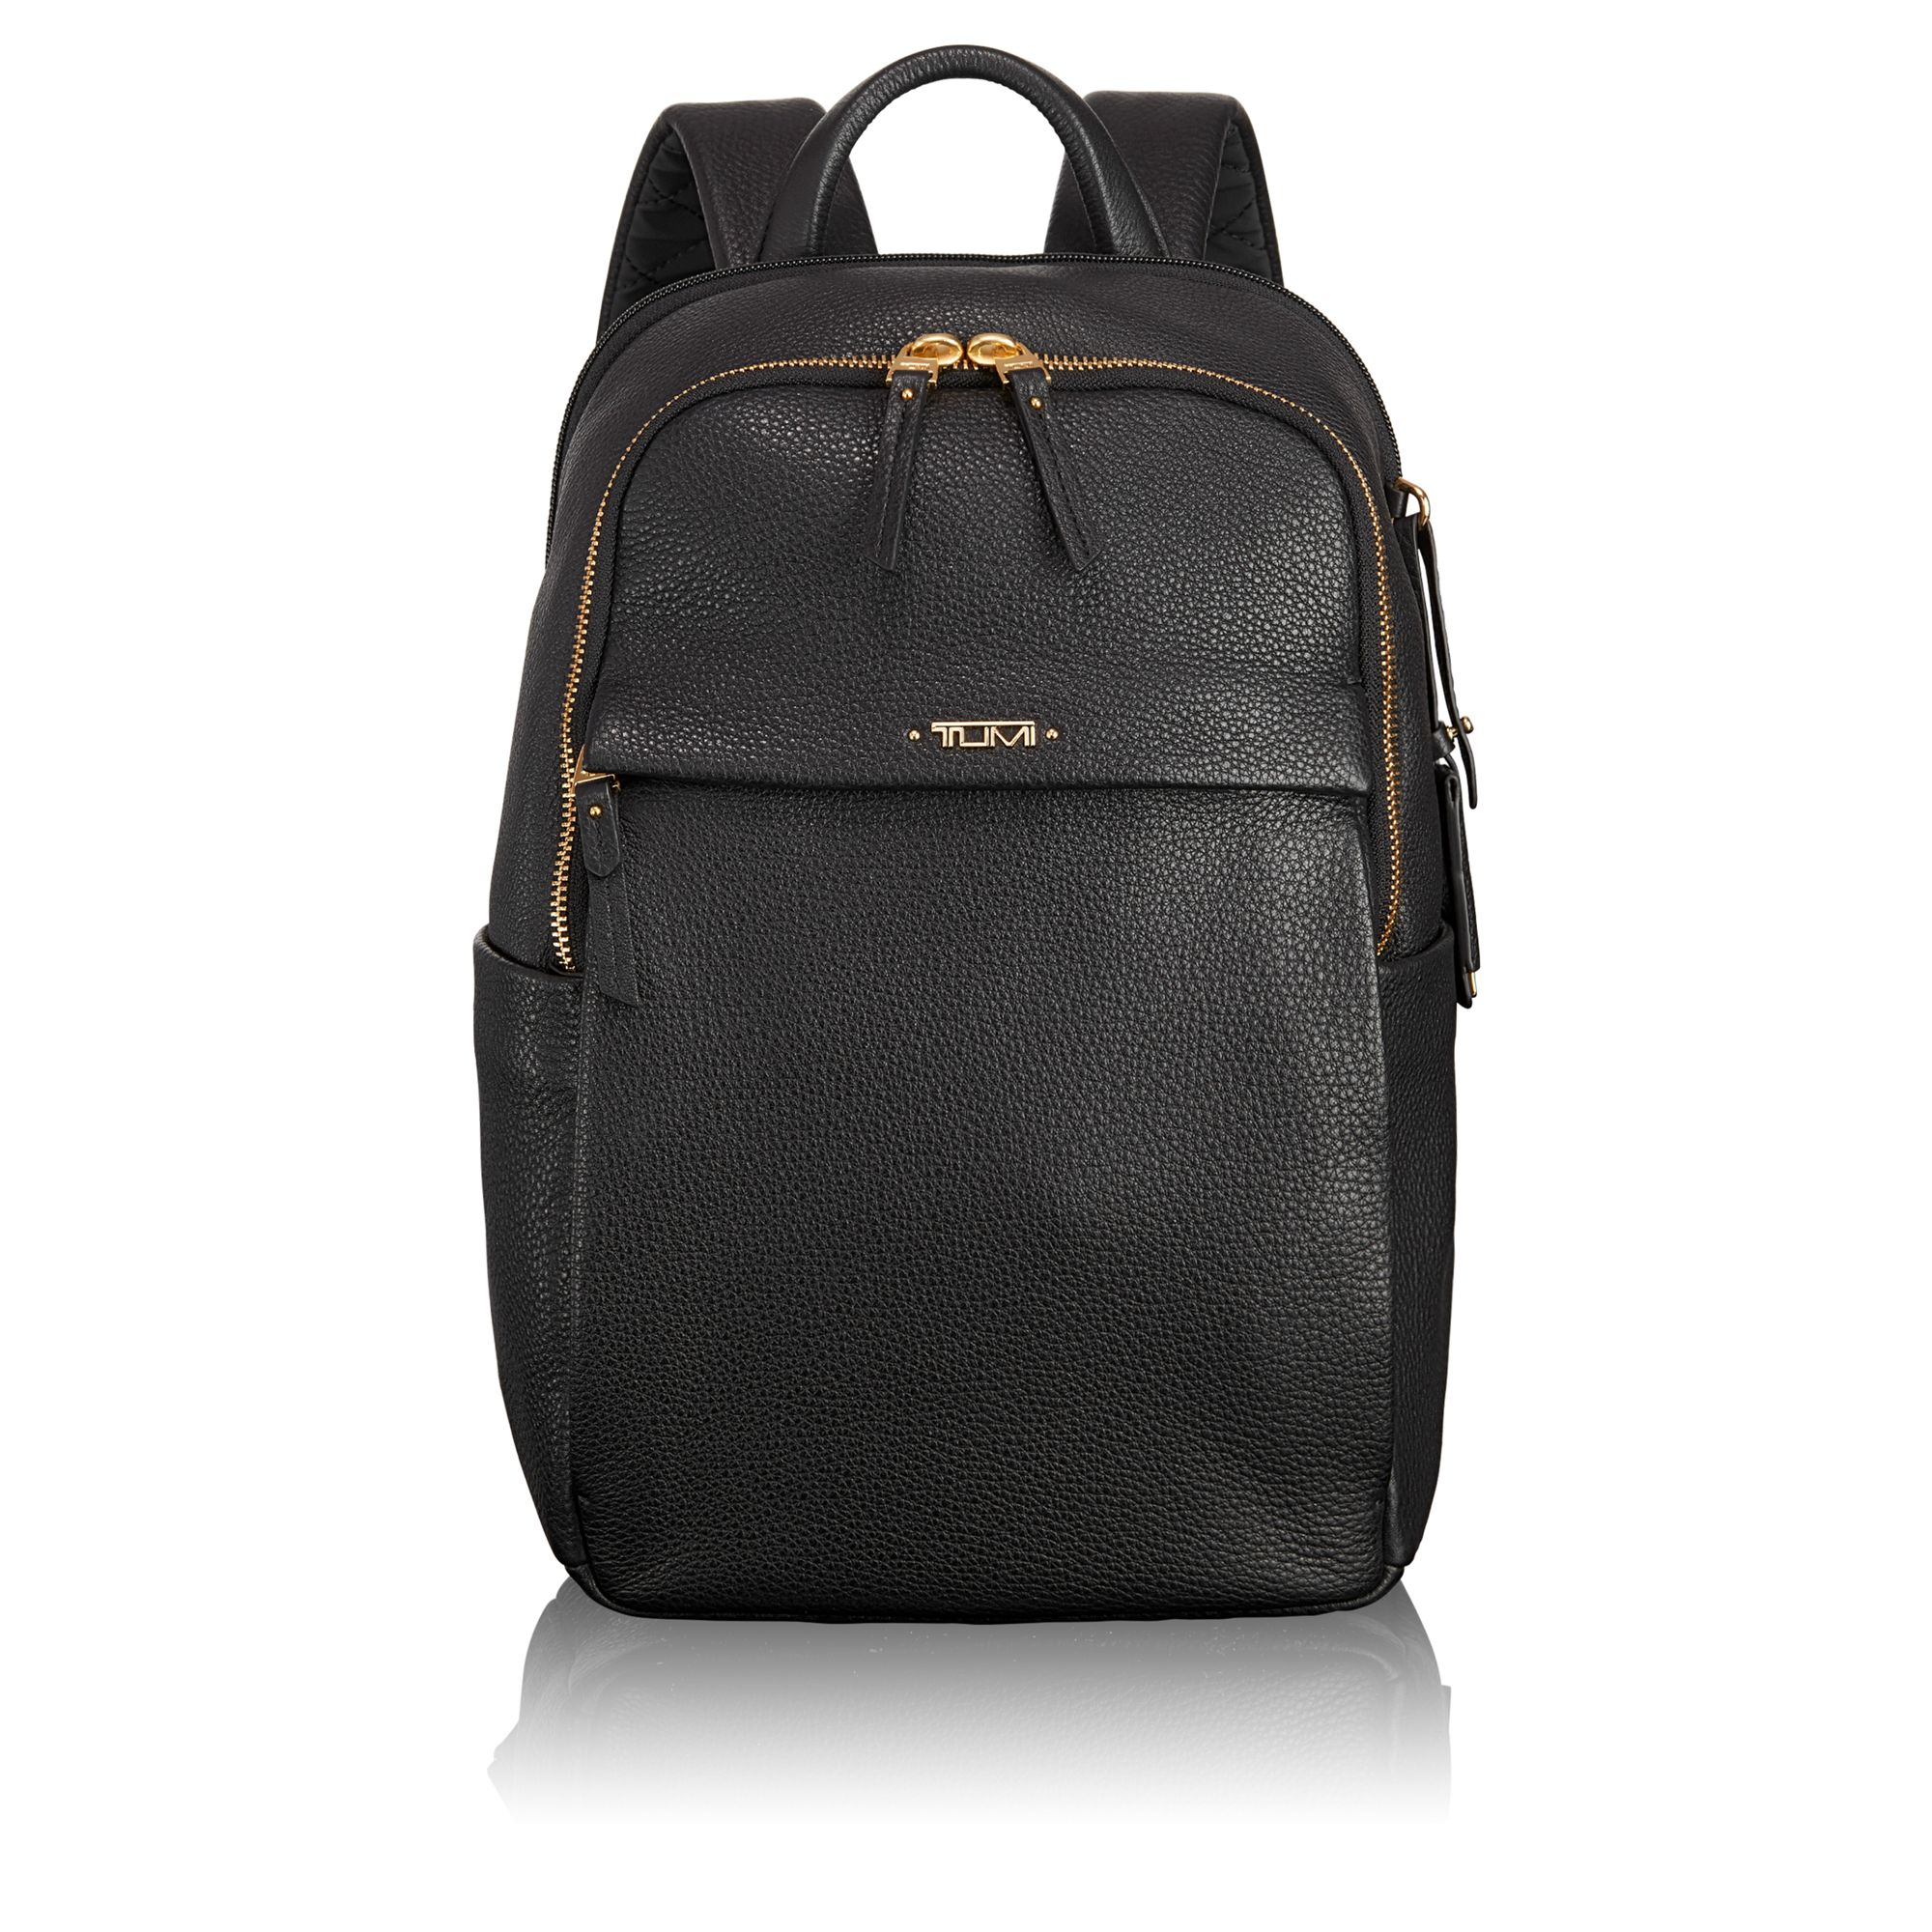 Travel Bags for Women - Backpacks & Sling Bags - Tumi United States